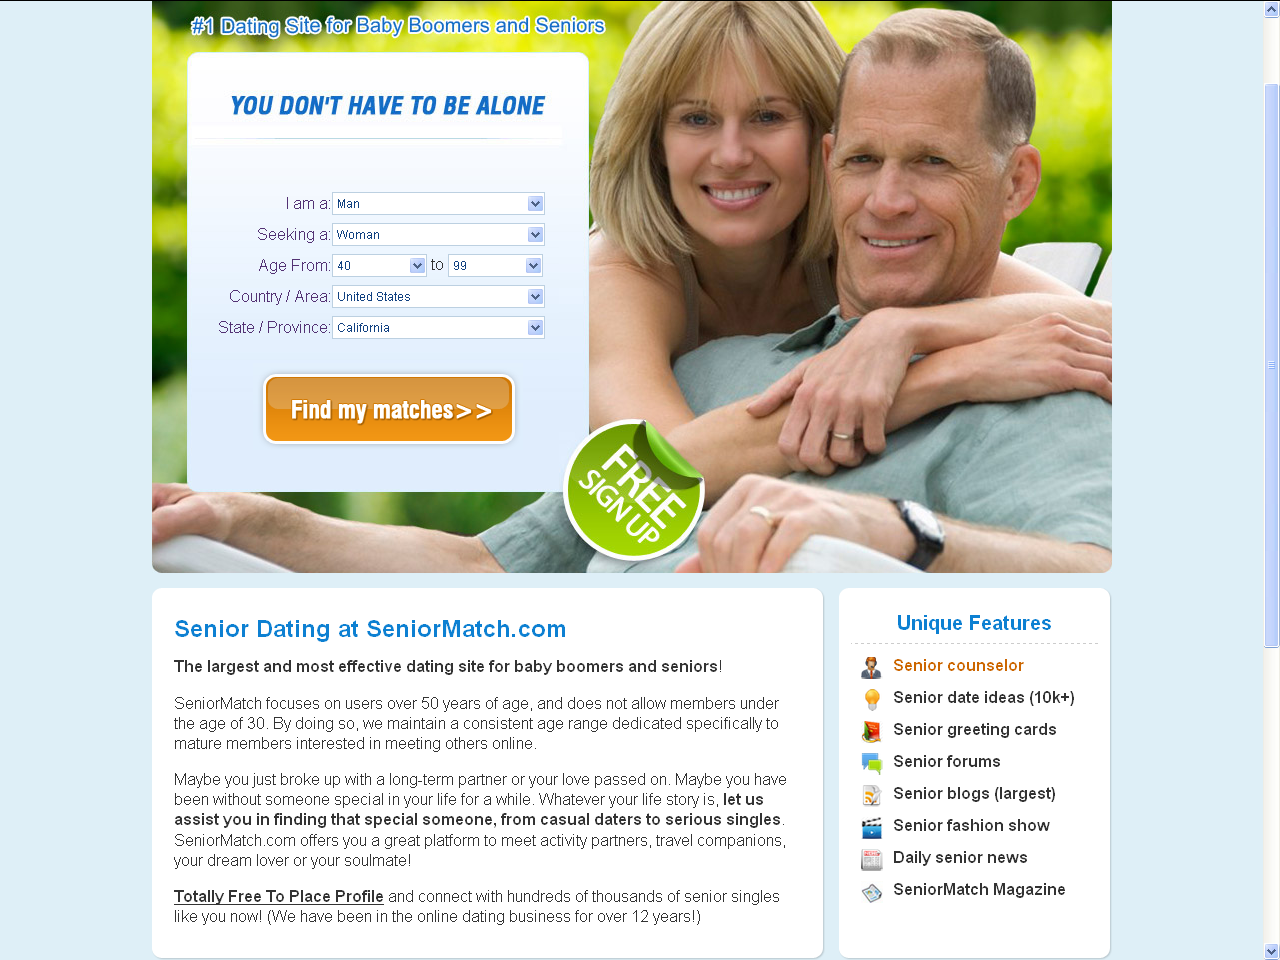 baker senior dating site Dating for seniors is the #1 dating site for senior single men/women looking to find their soulmate 100% free senior dating site signup today.